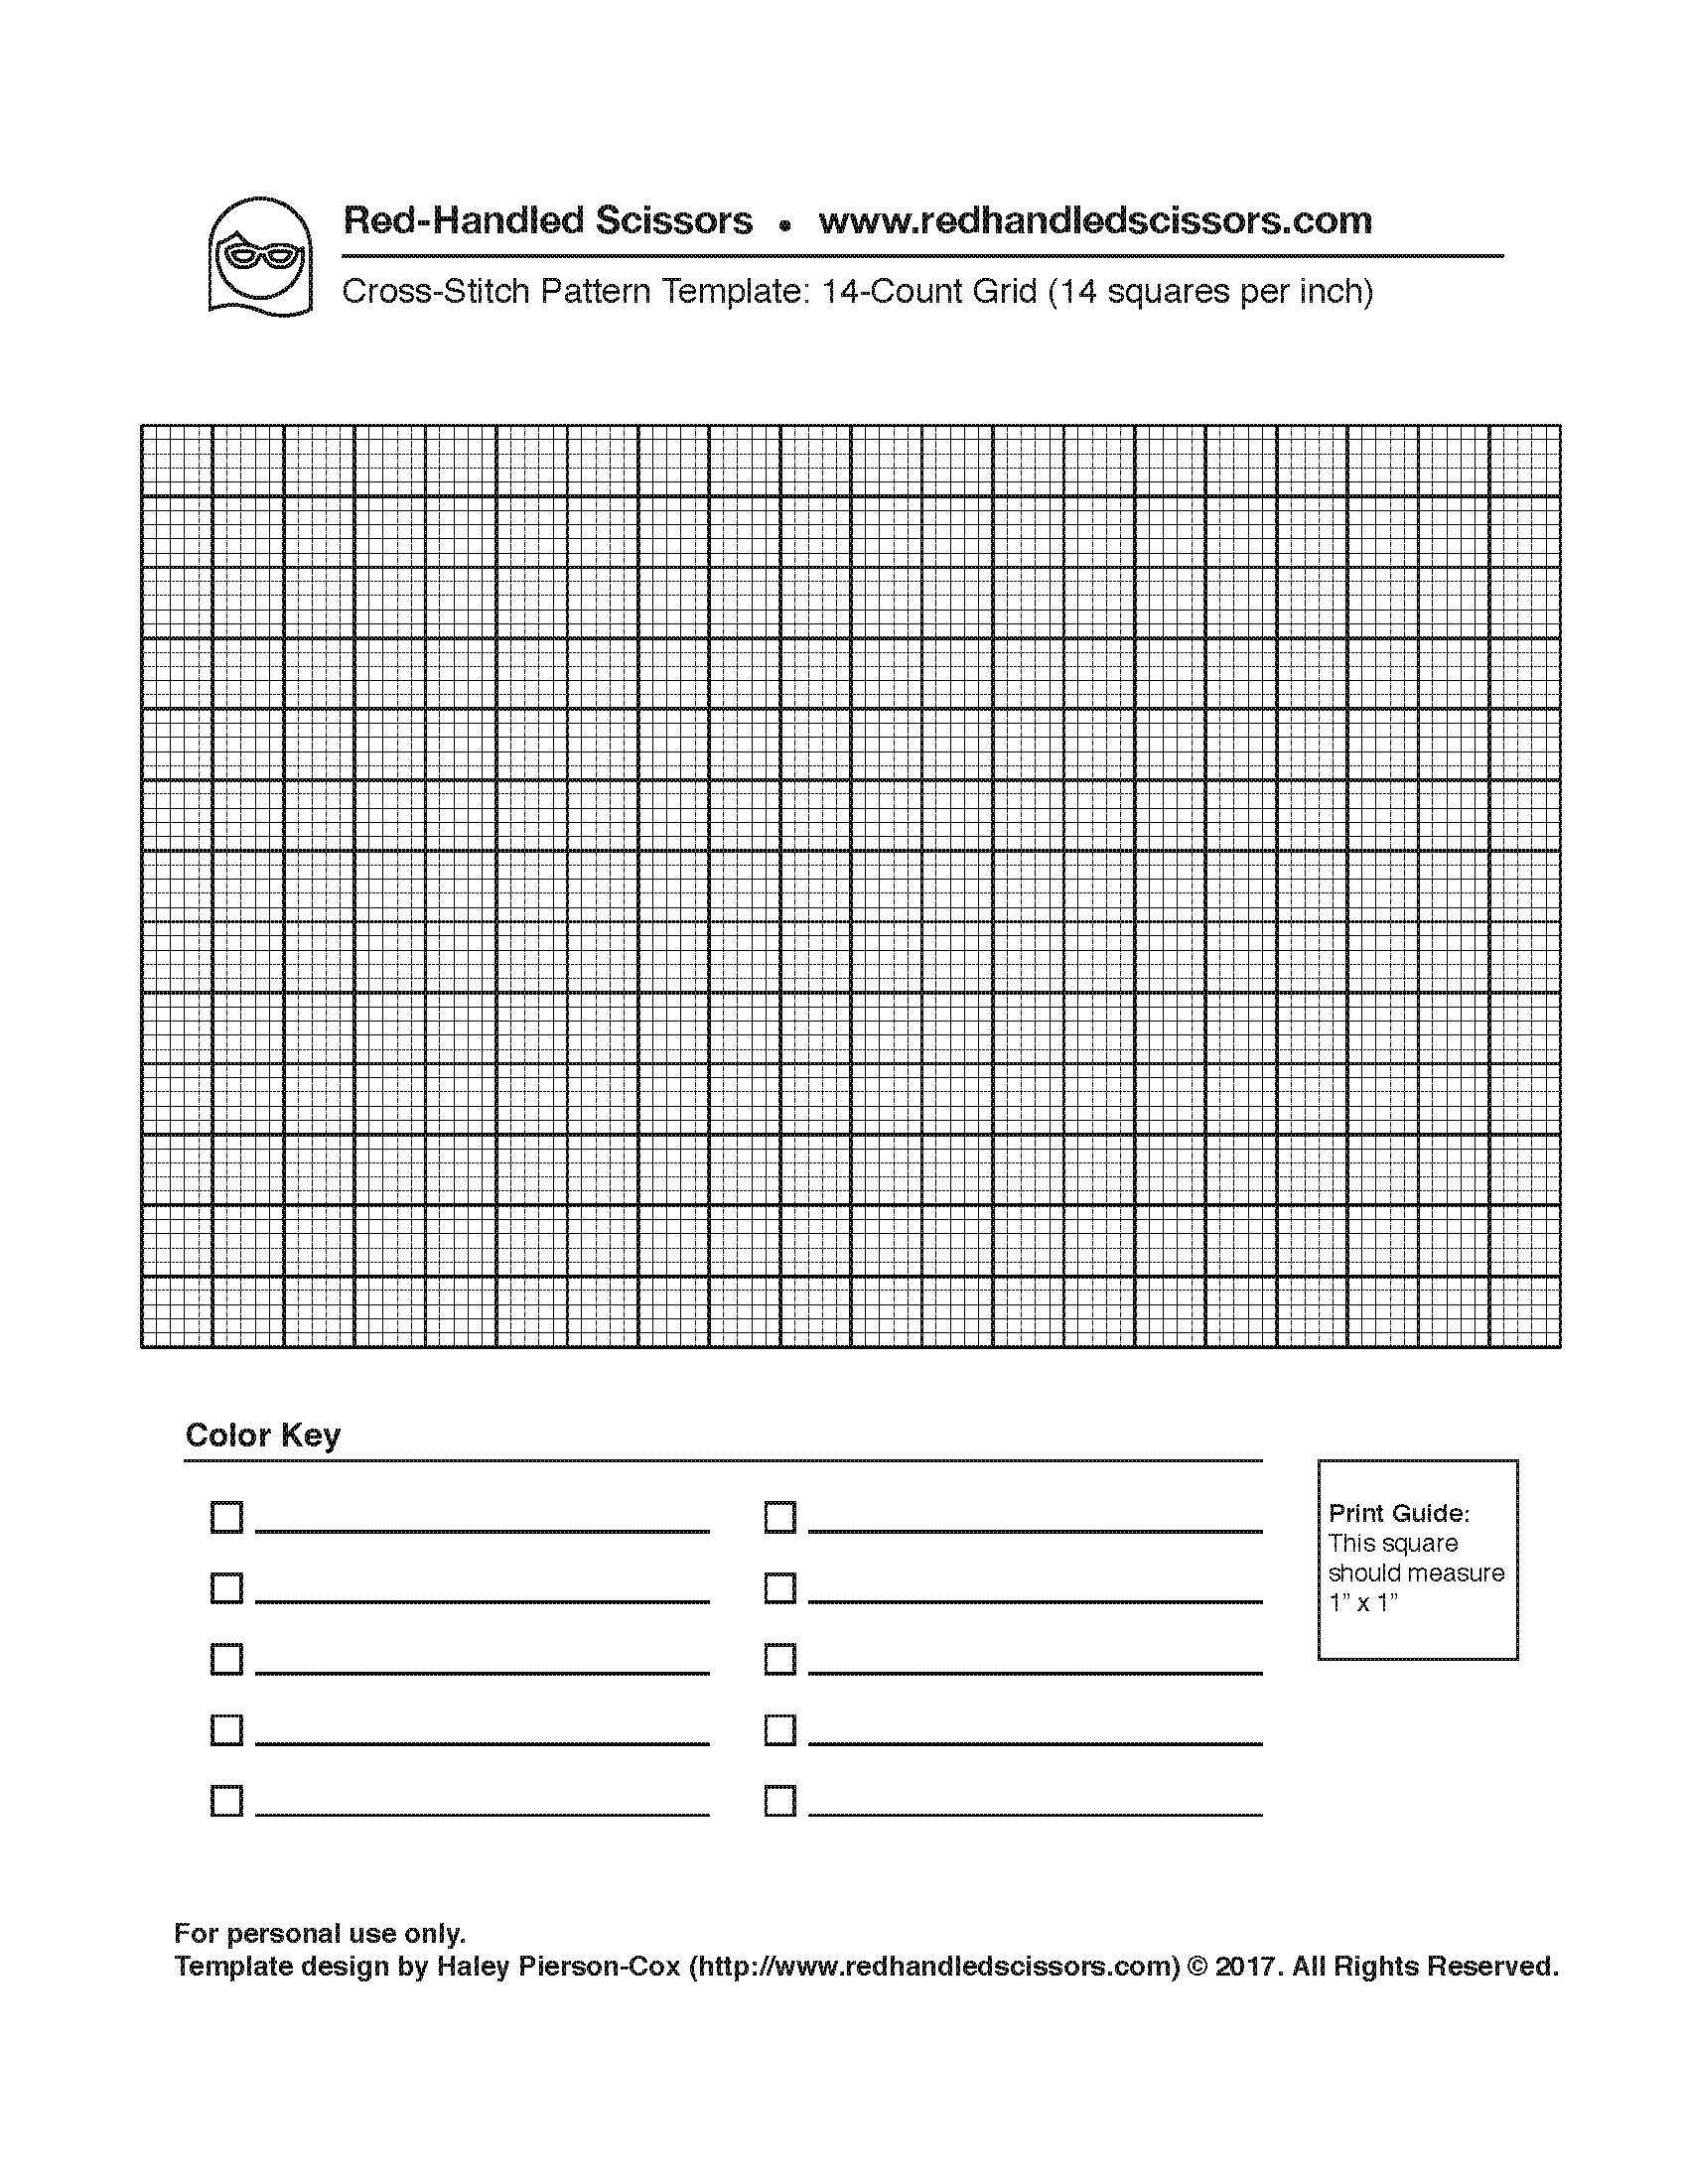 image about Printable Cross Pattern titled Downloadable Cross-Sch Graph Paper Templates Purple